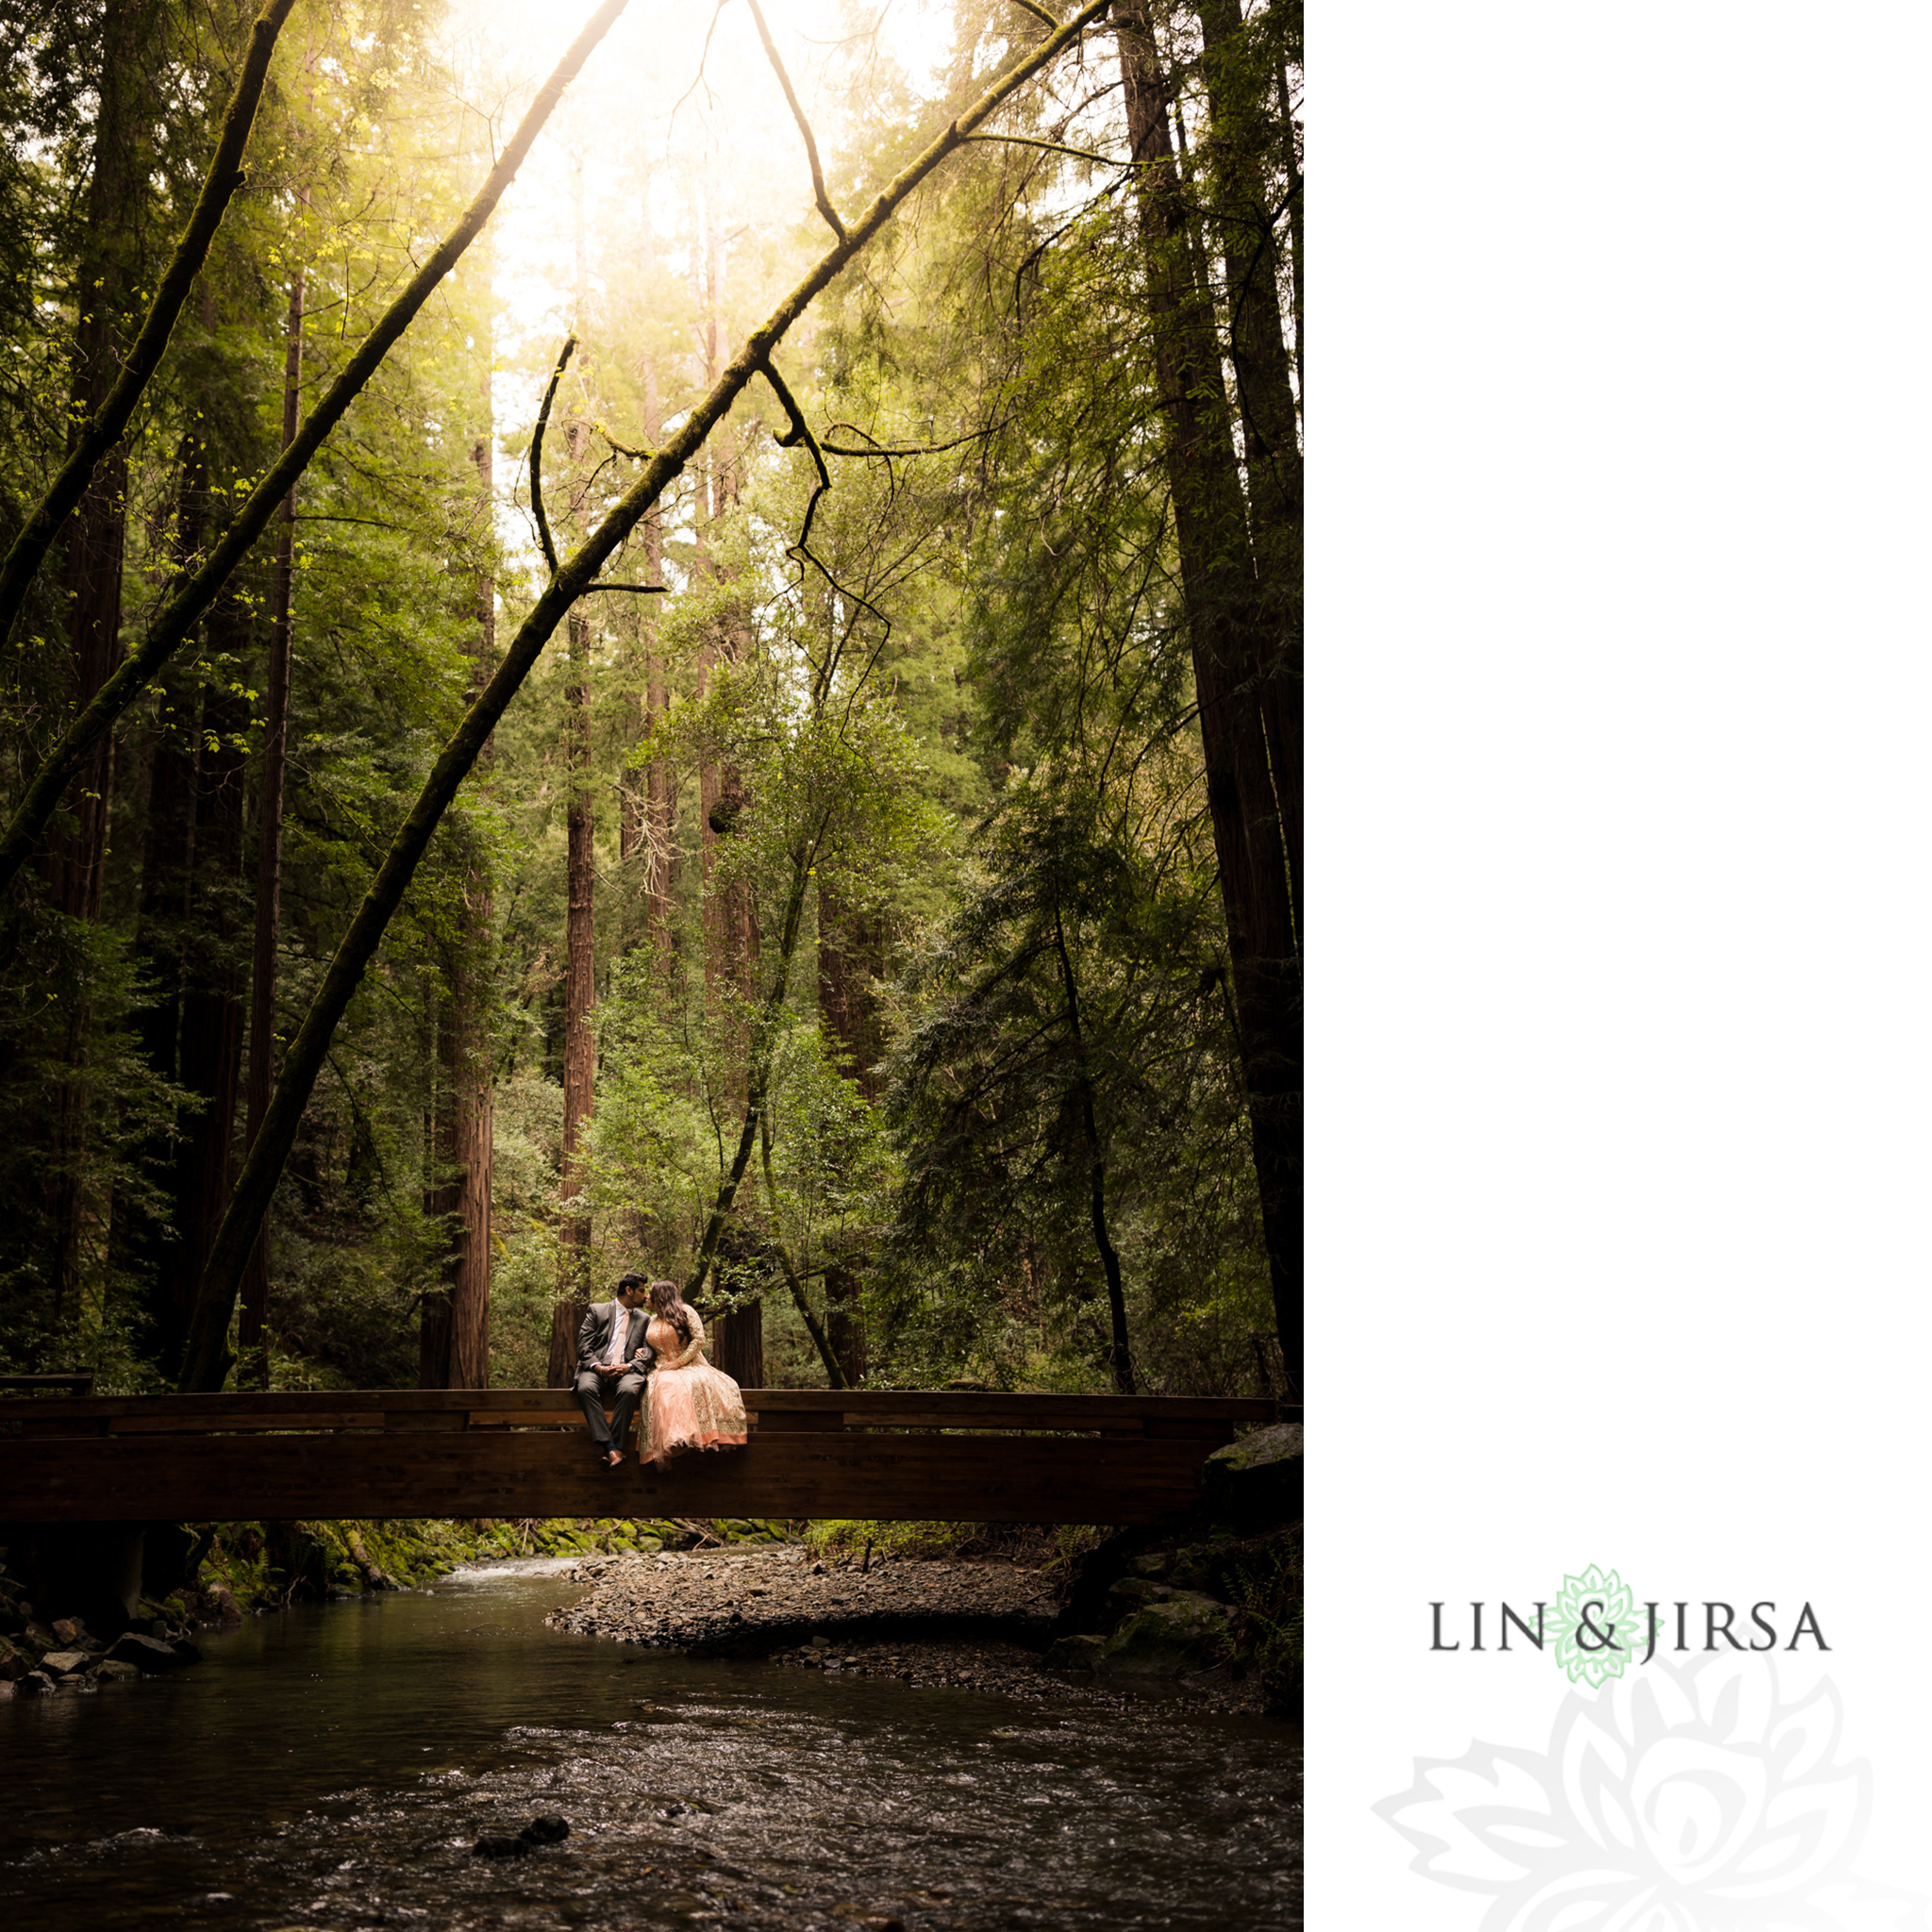 07-San-francisco-muir-woods-marin-county-engagement-photography